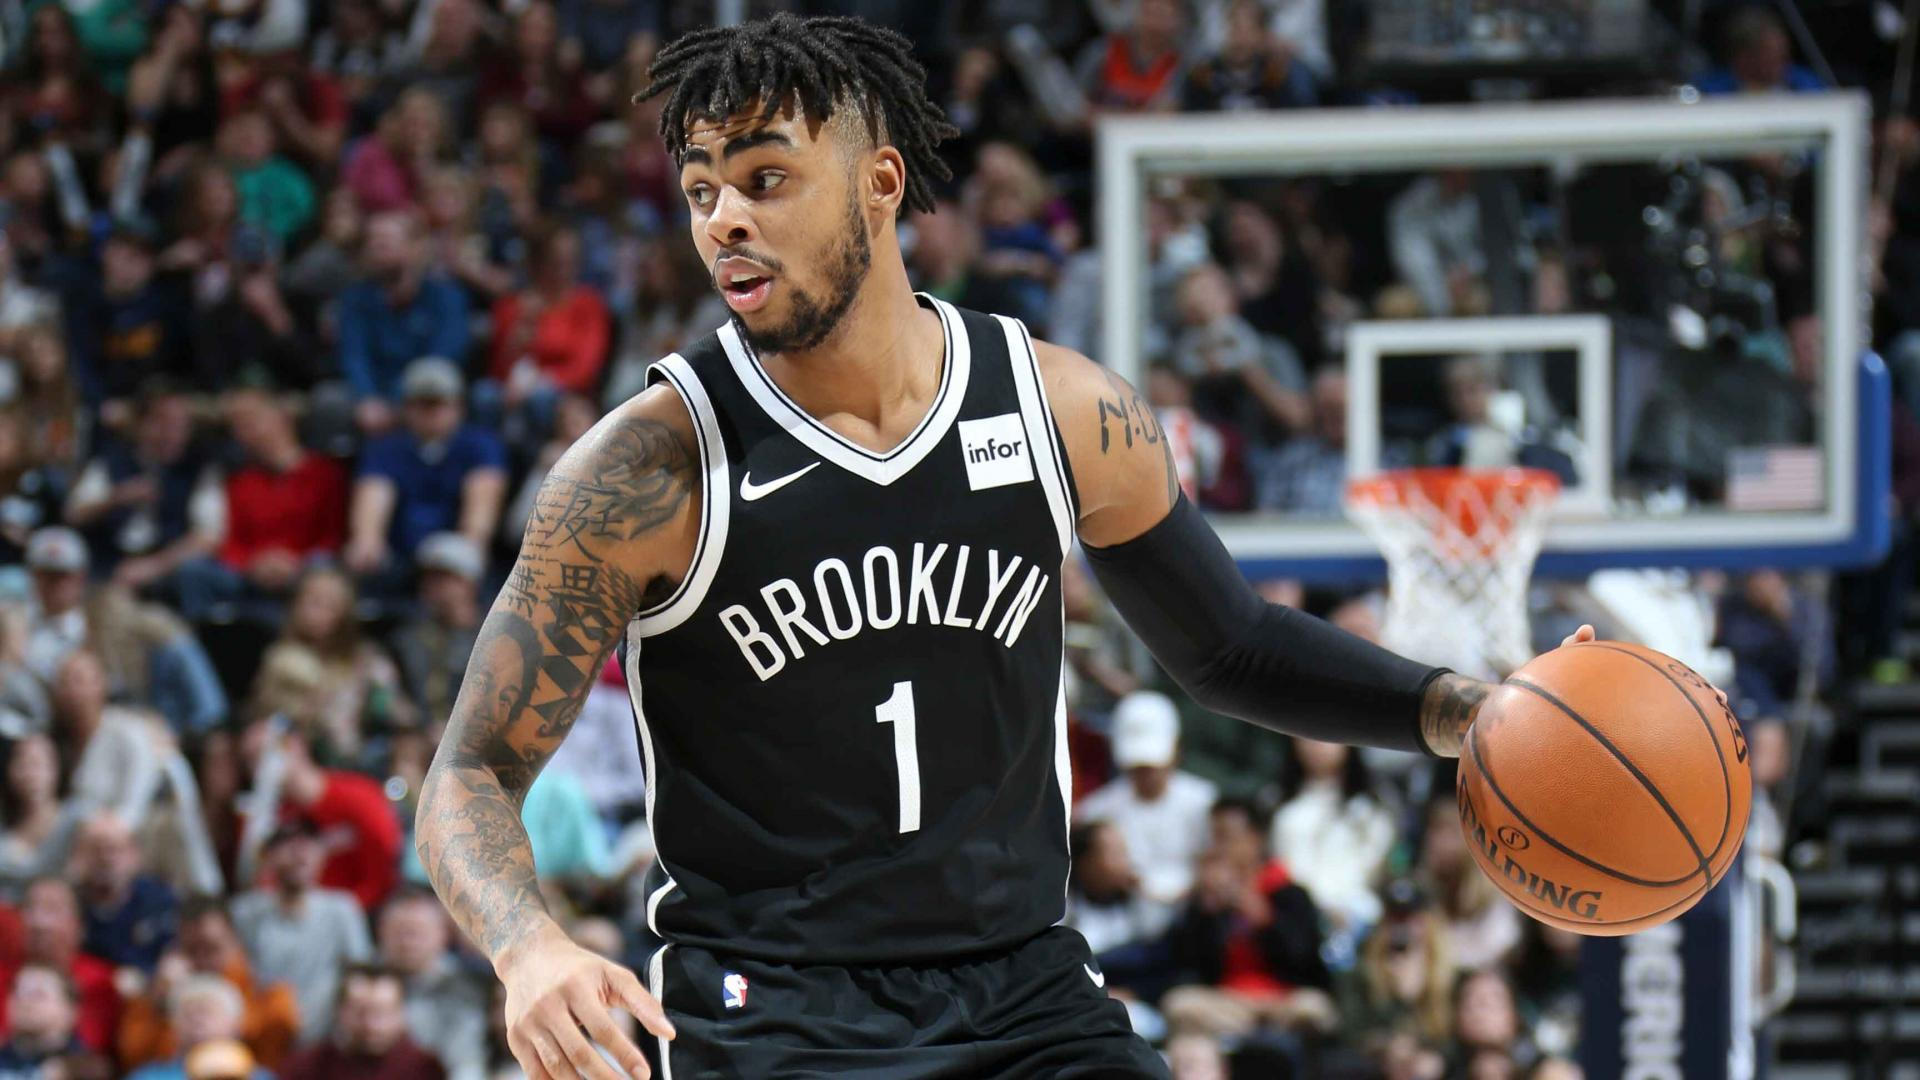 D'Angelo Russell 'likely to miss several games' with knee injury